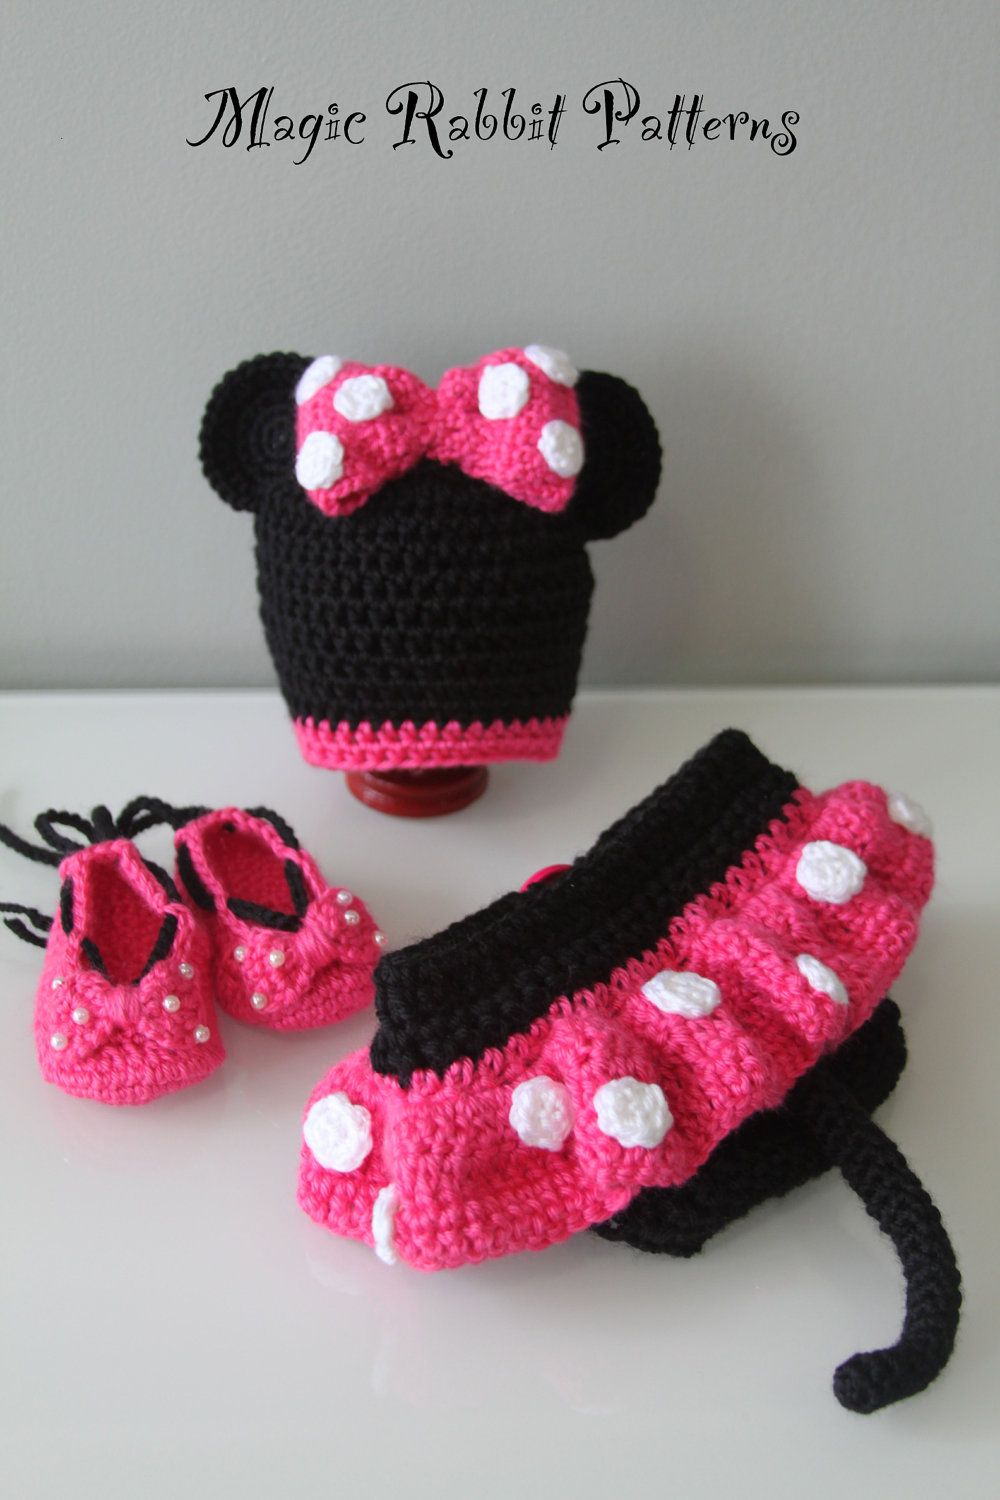 Free Crochet Pattern For Mickey Mouse Shoes : Crochet Minnie Mouse Hat, Diaper cover with Skirt and ...